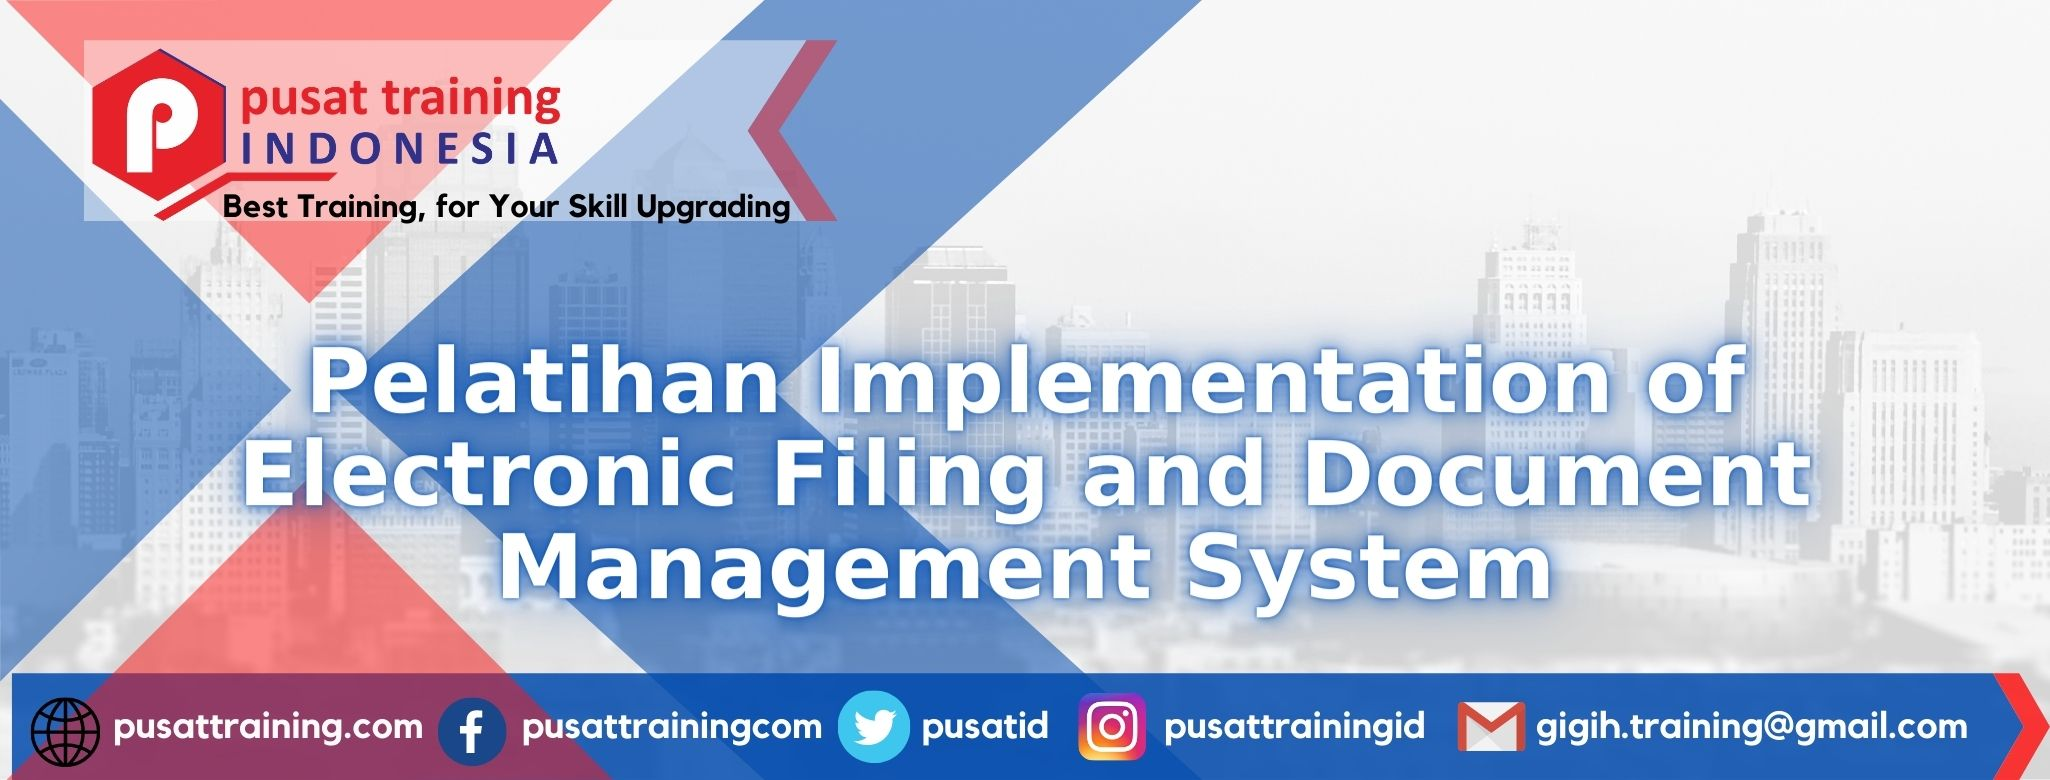 Pelatihan-Implementation-of-Electronic-Filing-and-Document-Management-System